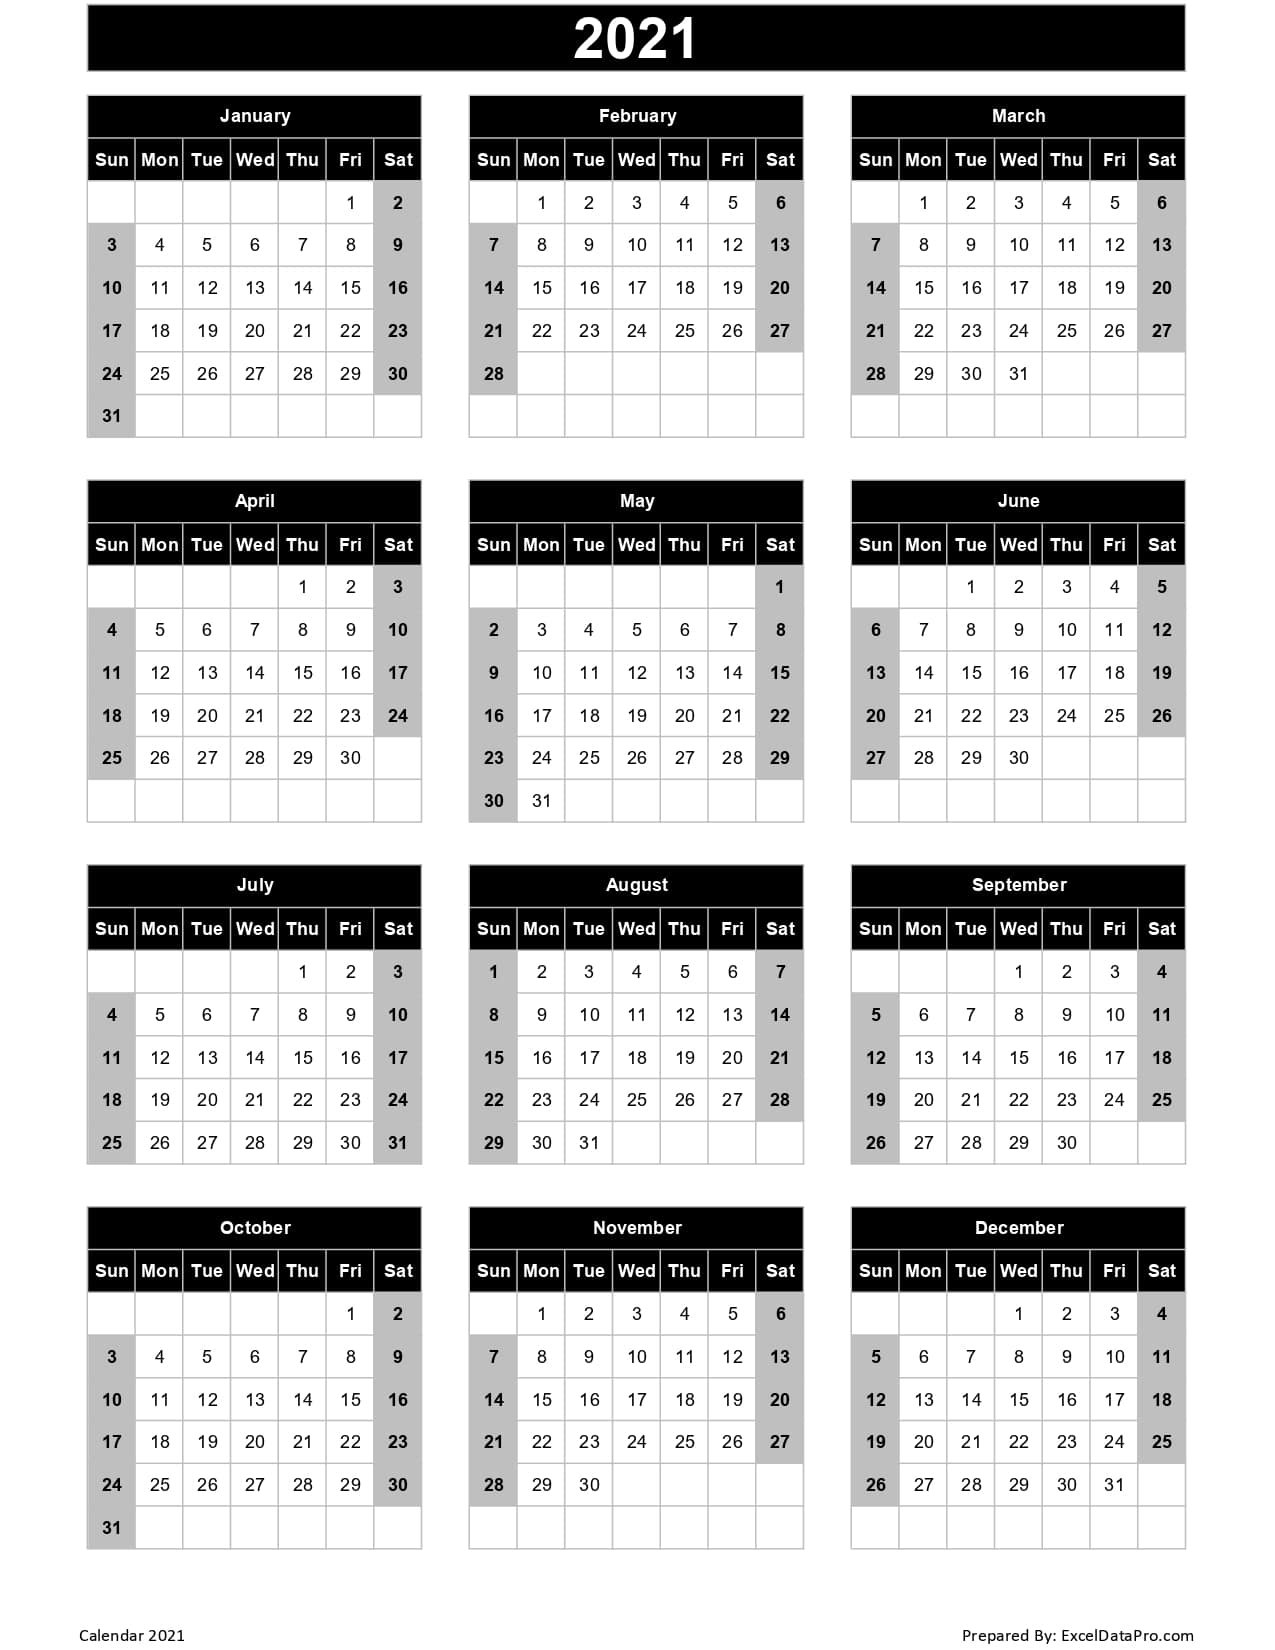 Calendar 2021 Excel Templates, Printable Pdfs & Images - Exceldatapro intended for 2021 Calendar With Date Boxes